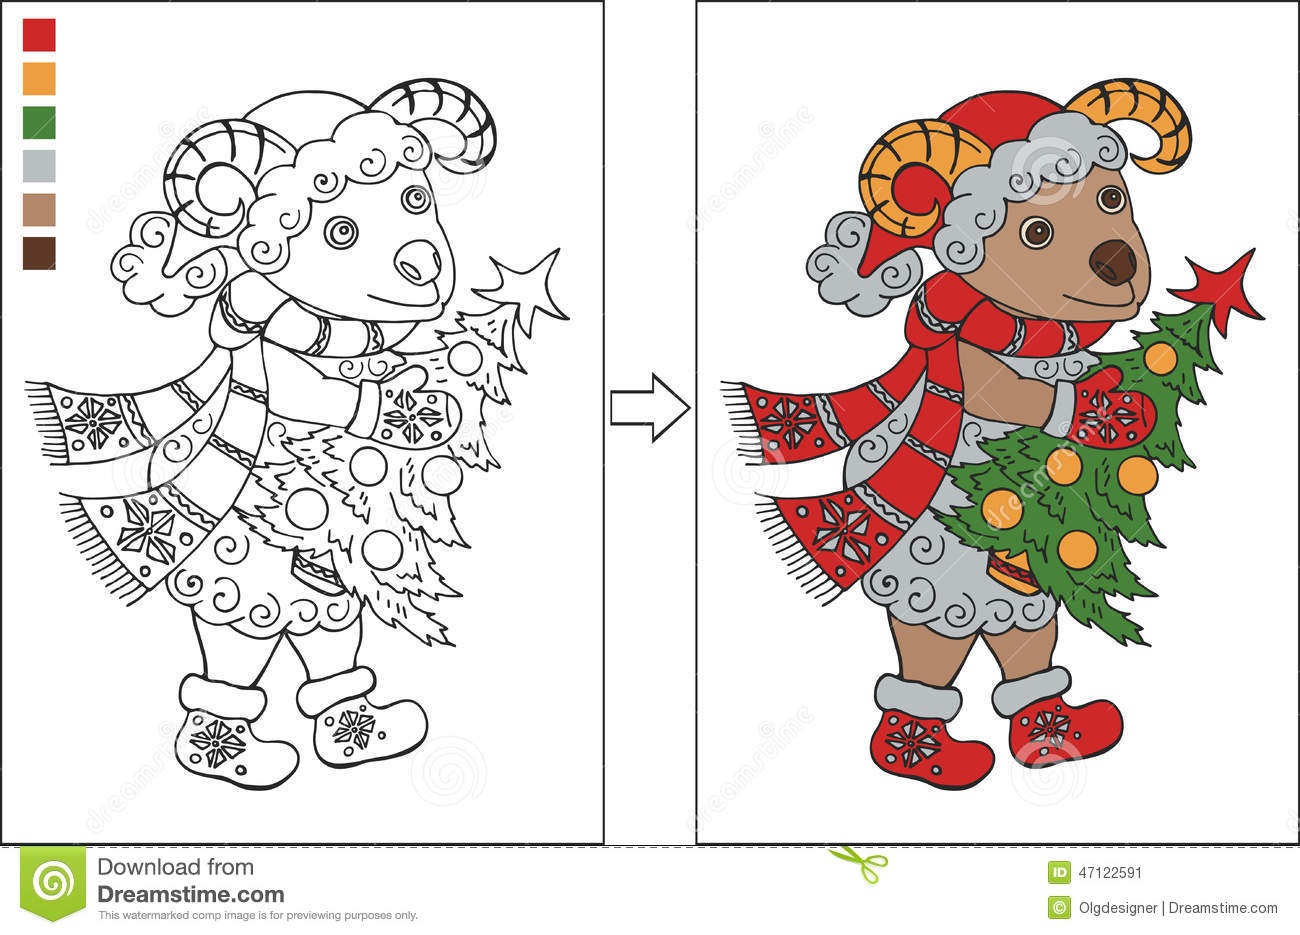 Coloring Page With New Year Ram Stock Vector - Illustration of claus ...